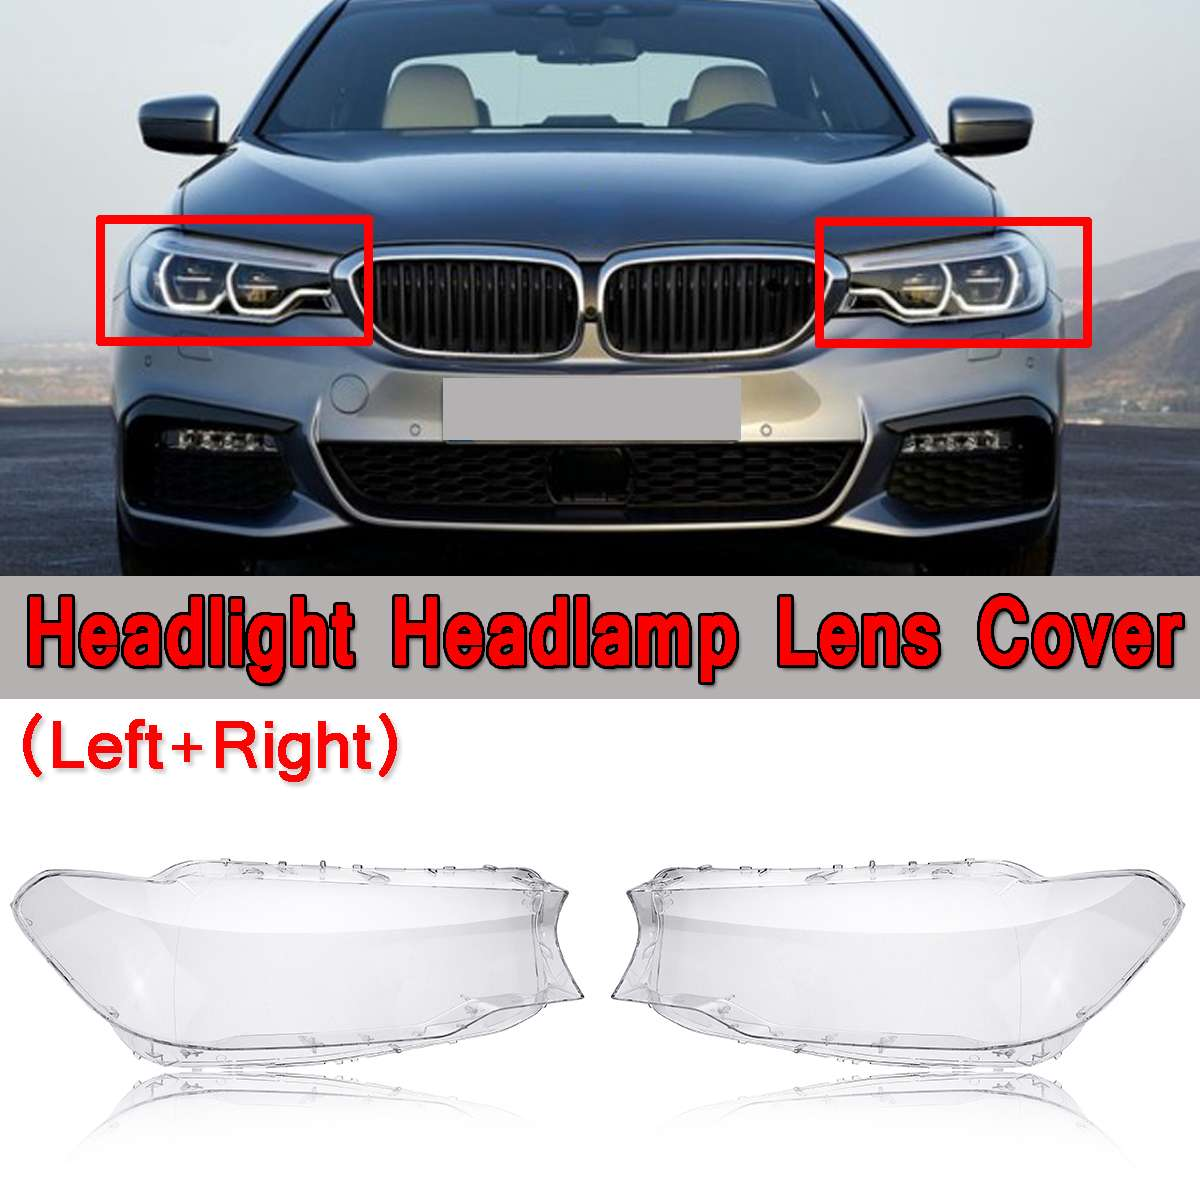 New Left / Right Car Front Bumper Headlight Headlamp Lens Cover Shell Case Replacement For BMW 5 Series G30 2017 2018 4769886123